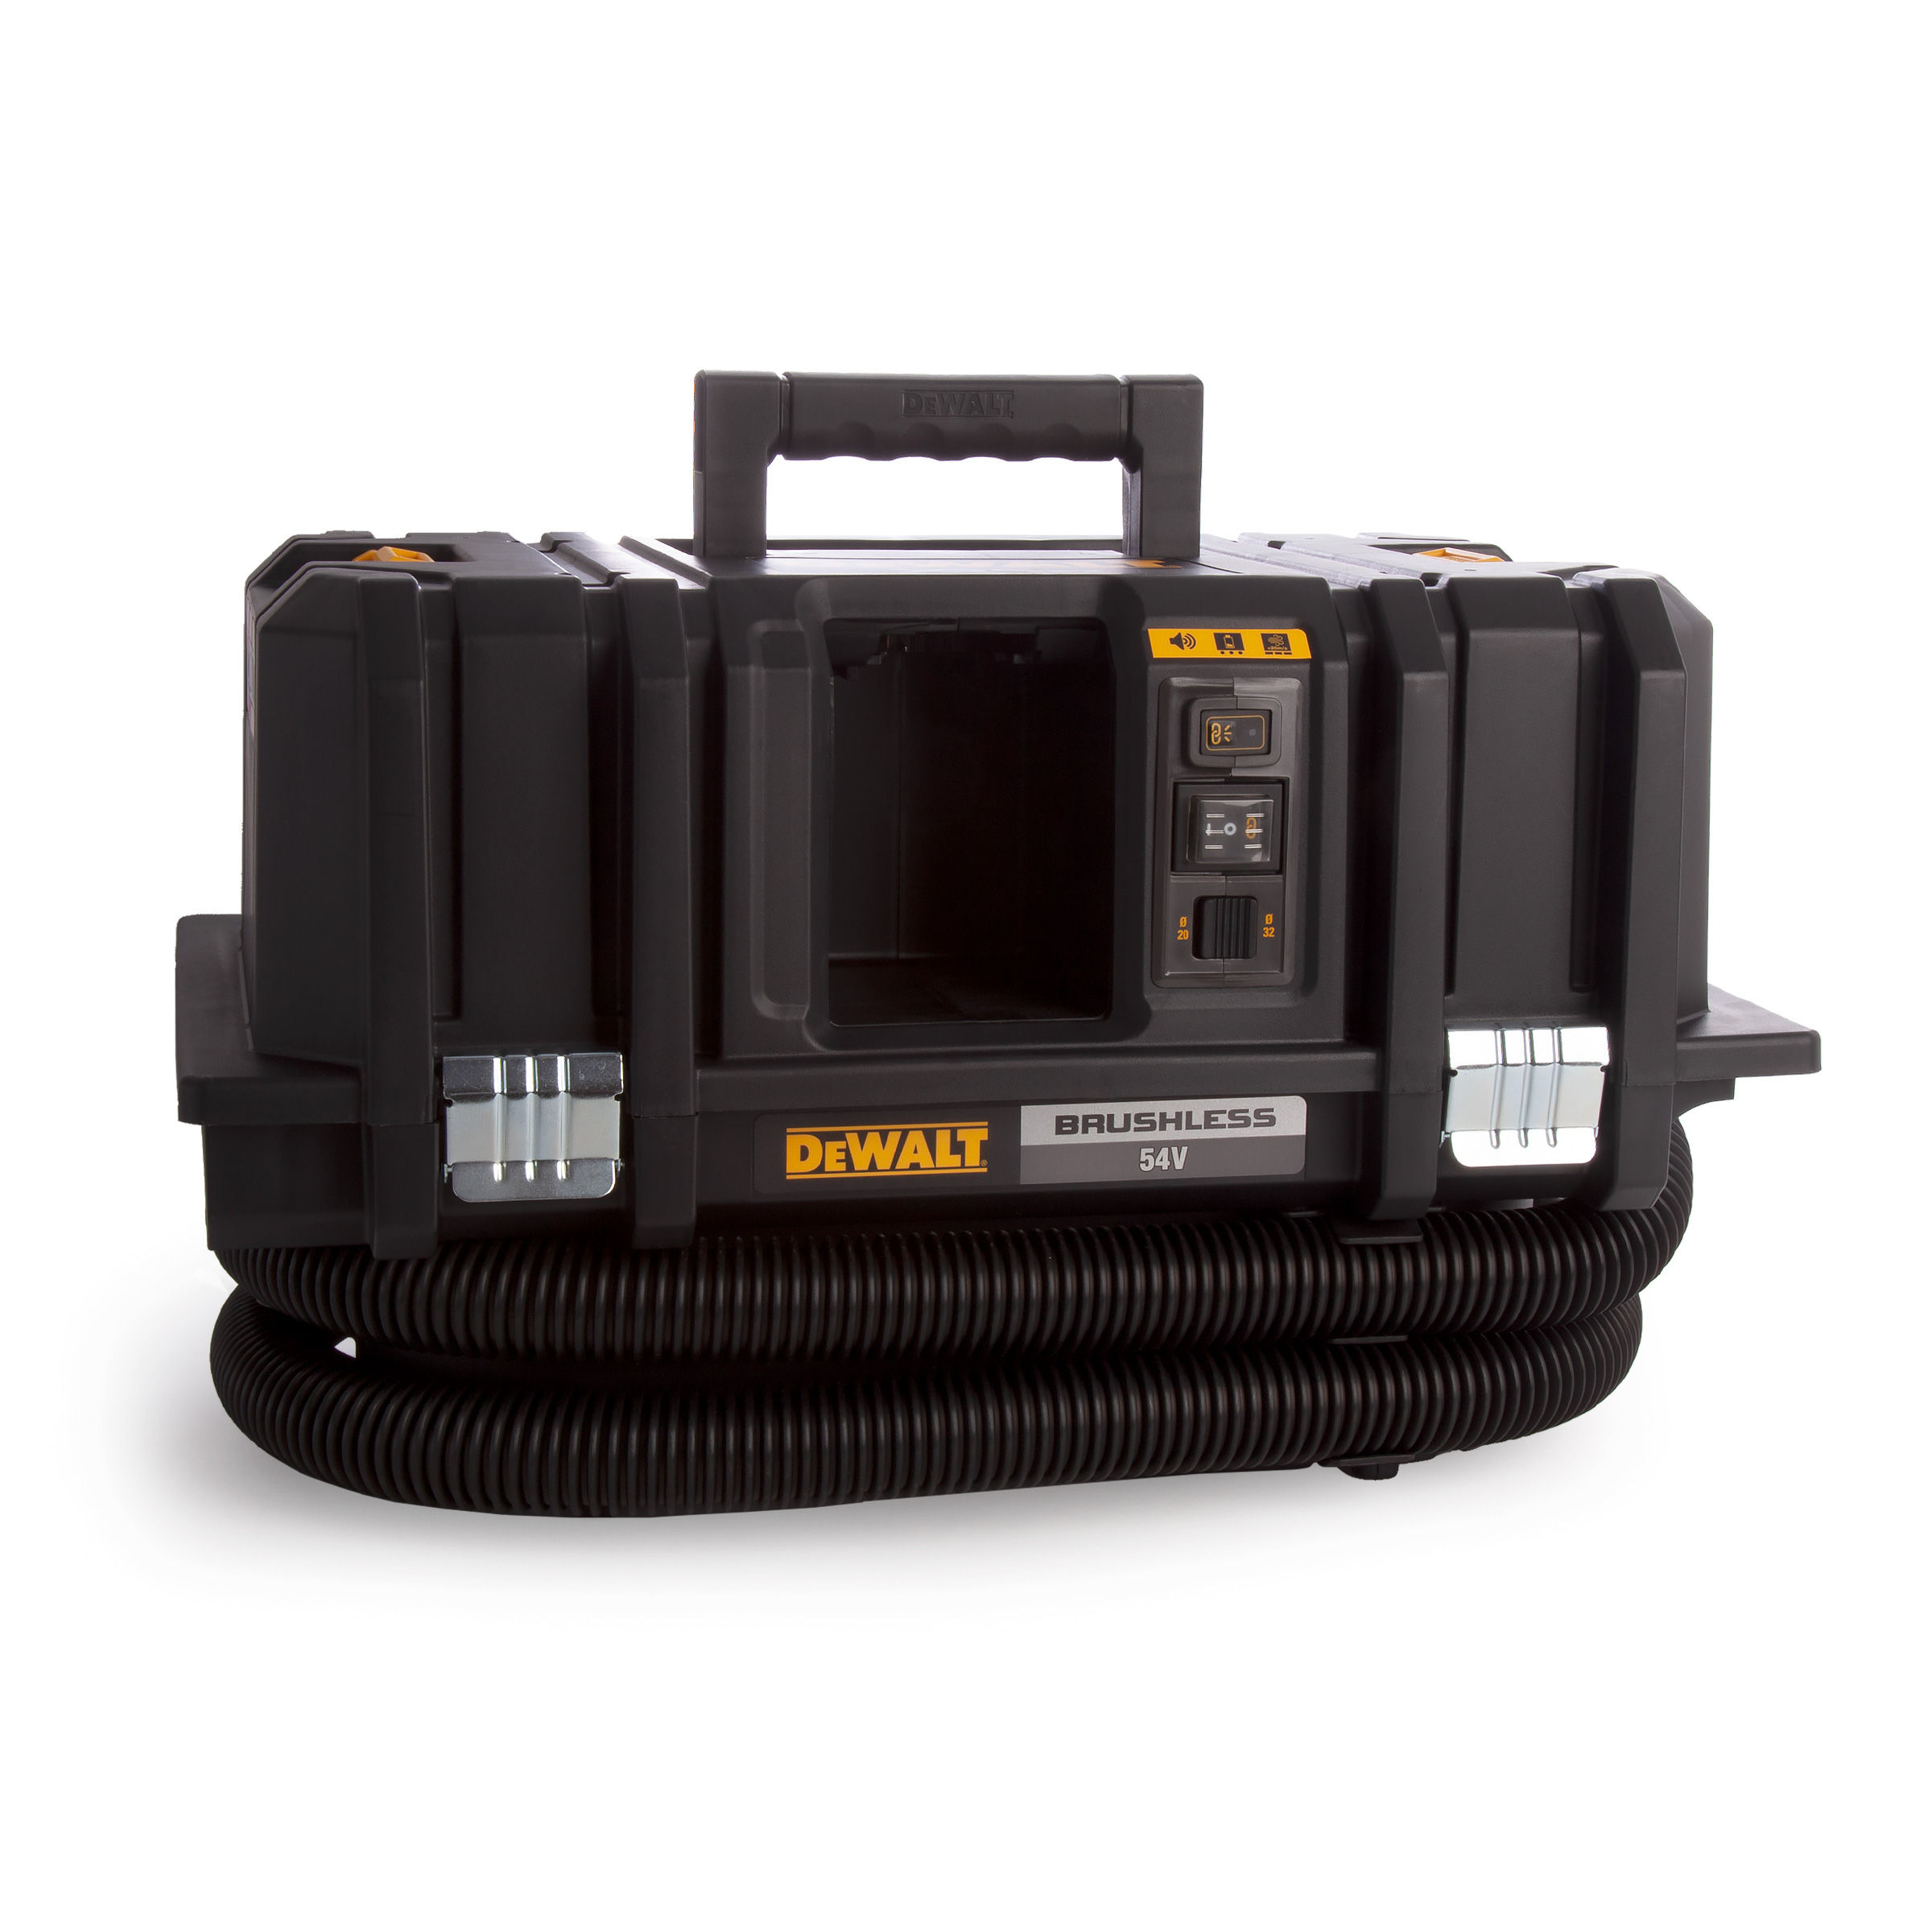 Dewalt Dust Extractor >> Dewalt Dcv586mn 54v Xr Flexvolt M Class Dust Extractor Body Only